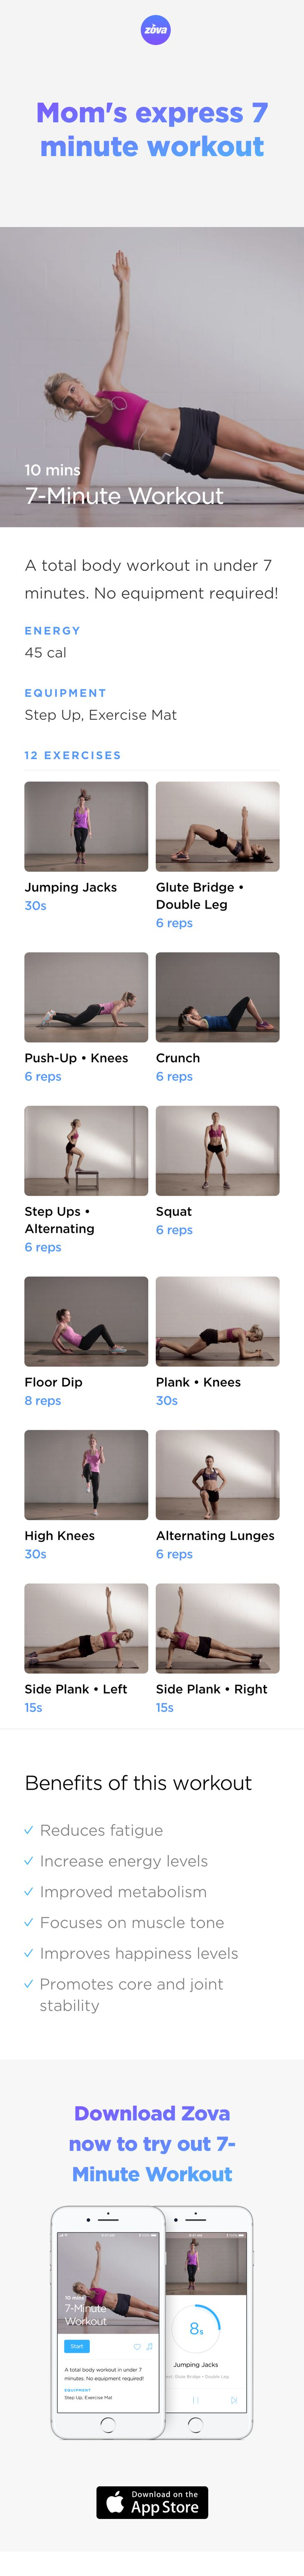 As any mom will tell you, a good workout is a quick workout and this short but intense routine ticks all the boxes. Designed for busy moms, these no equipment exercises will release an instant energy boost, plus they'lll increase fitness levels and speed metabolism rates at the same time. #weightloss #workout #fitness #HIIT #fullbody #sweat #bodyweight #calories #athome #mom